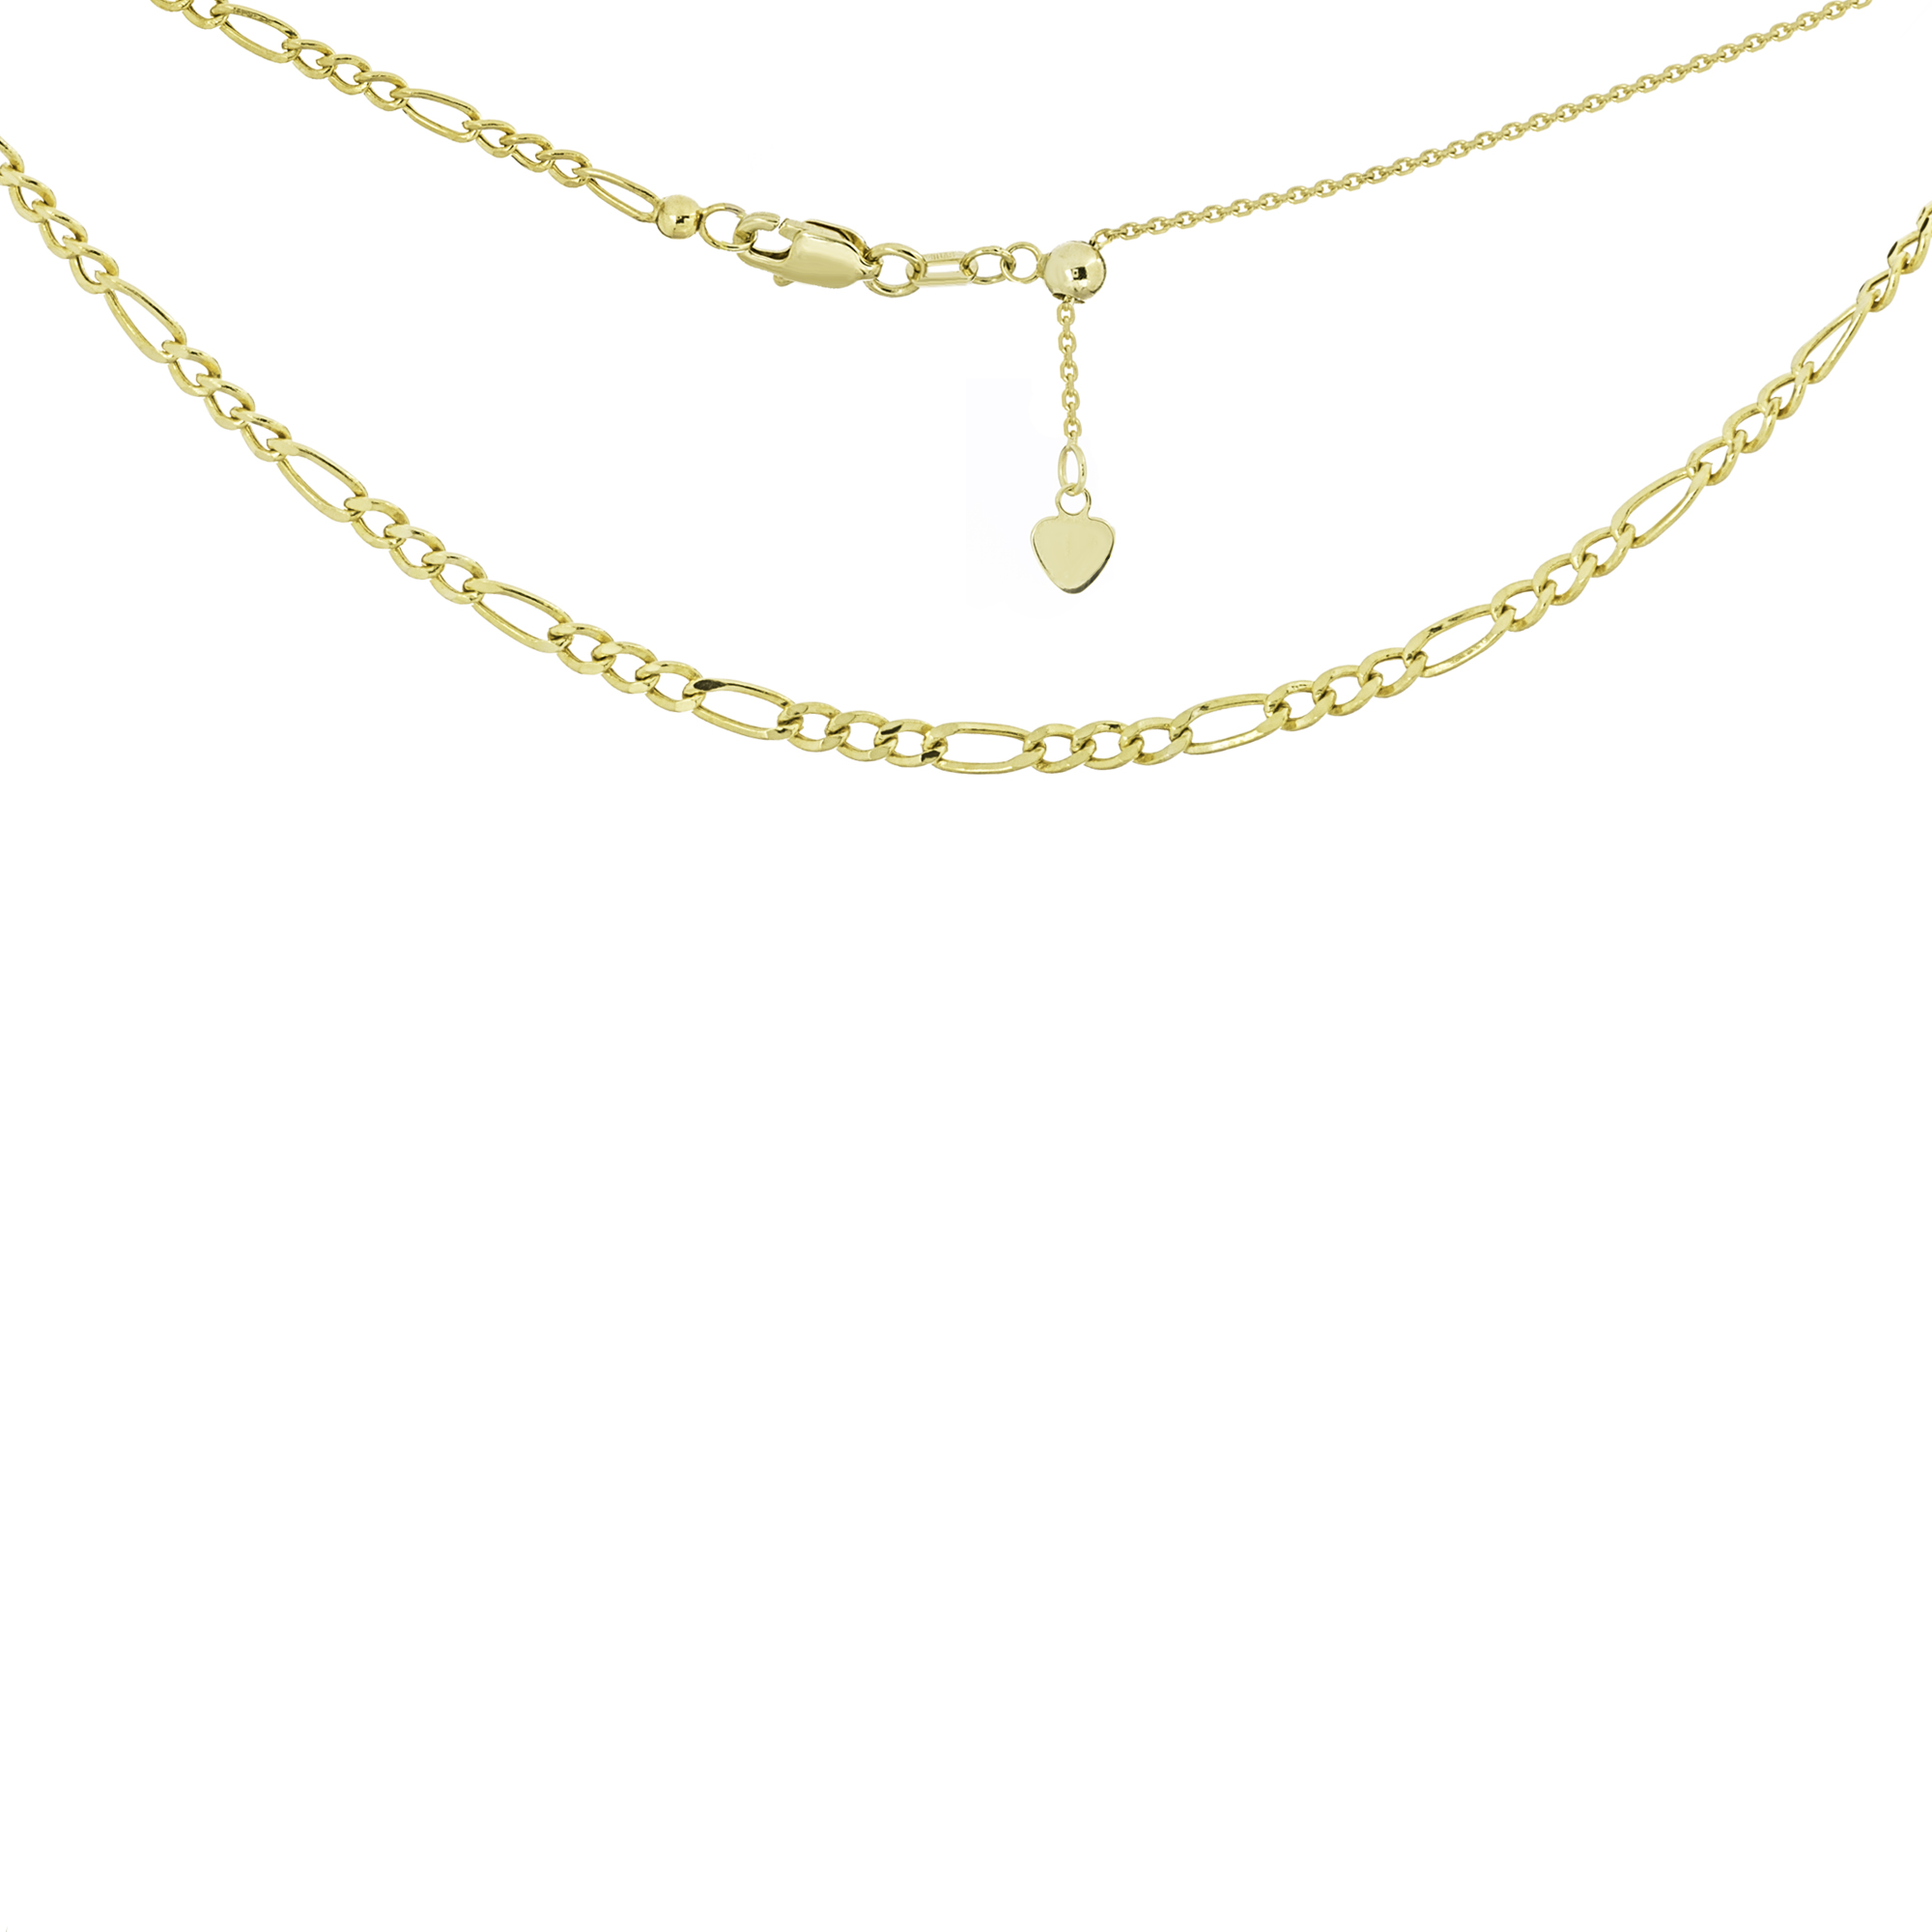 choker style wholesale gold showroom suppliers alibaba cuban cz chains plated chain